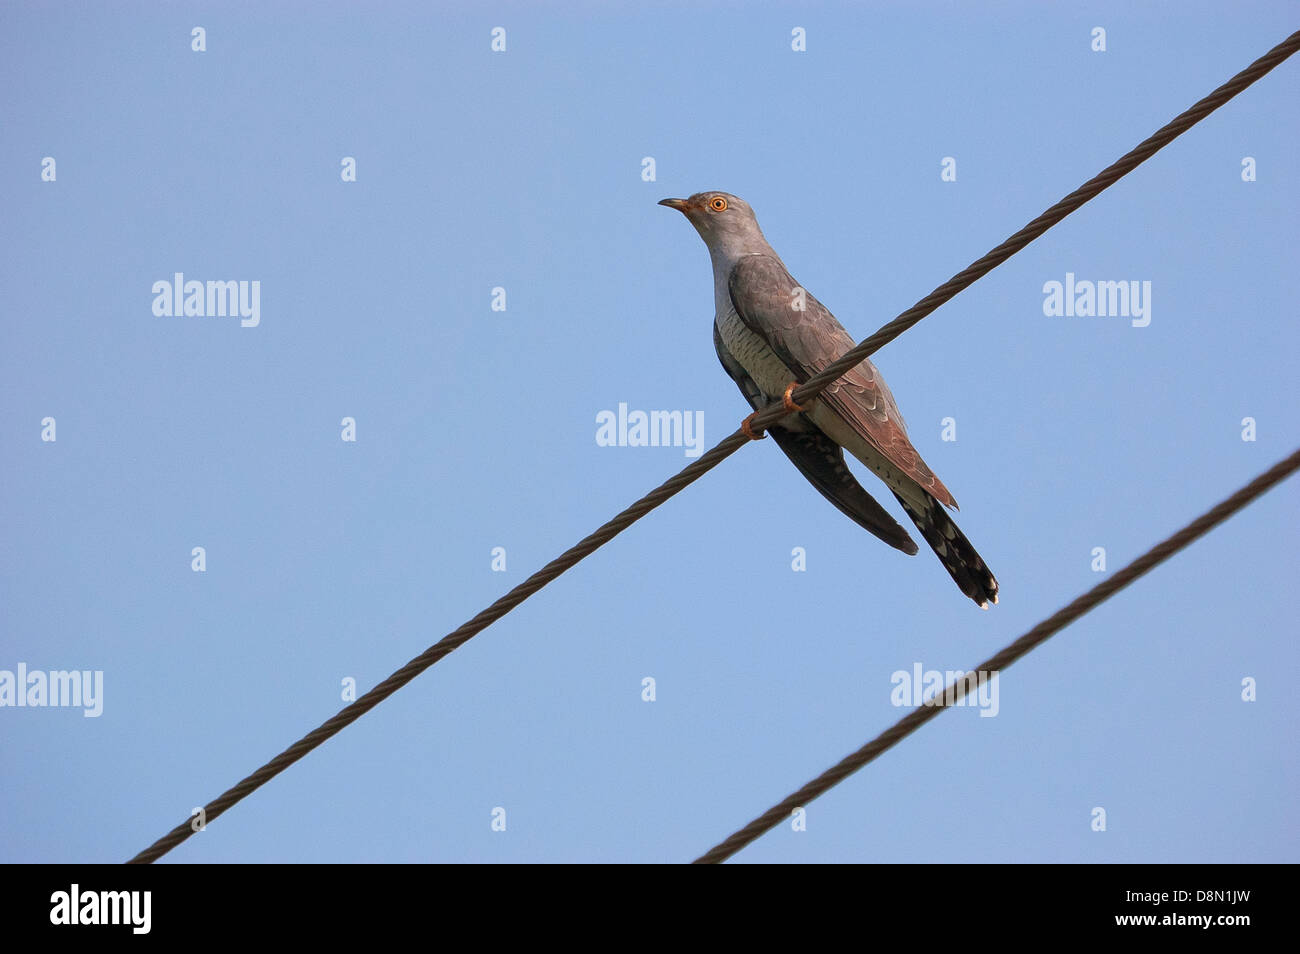 Common Cuckoo (Cuculus canorus) also called the European Cuckoo or Eurasian cuckoo - Stock Image